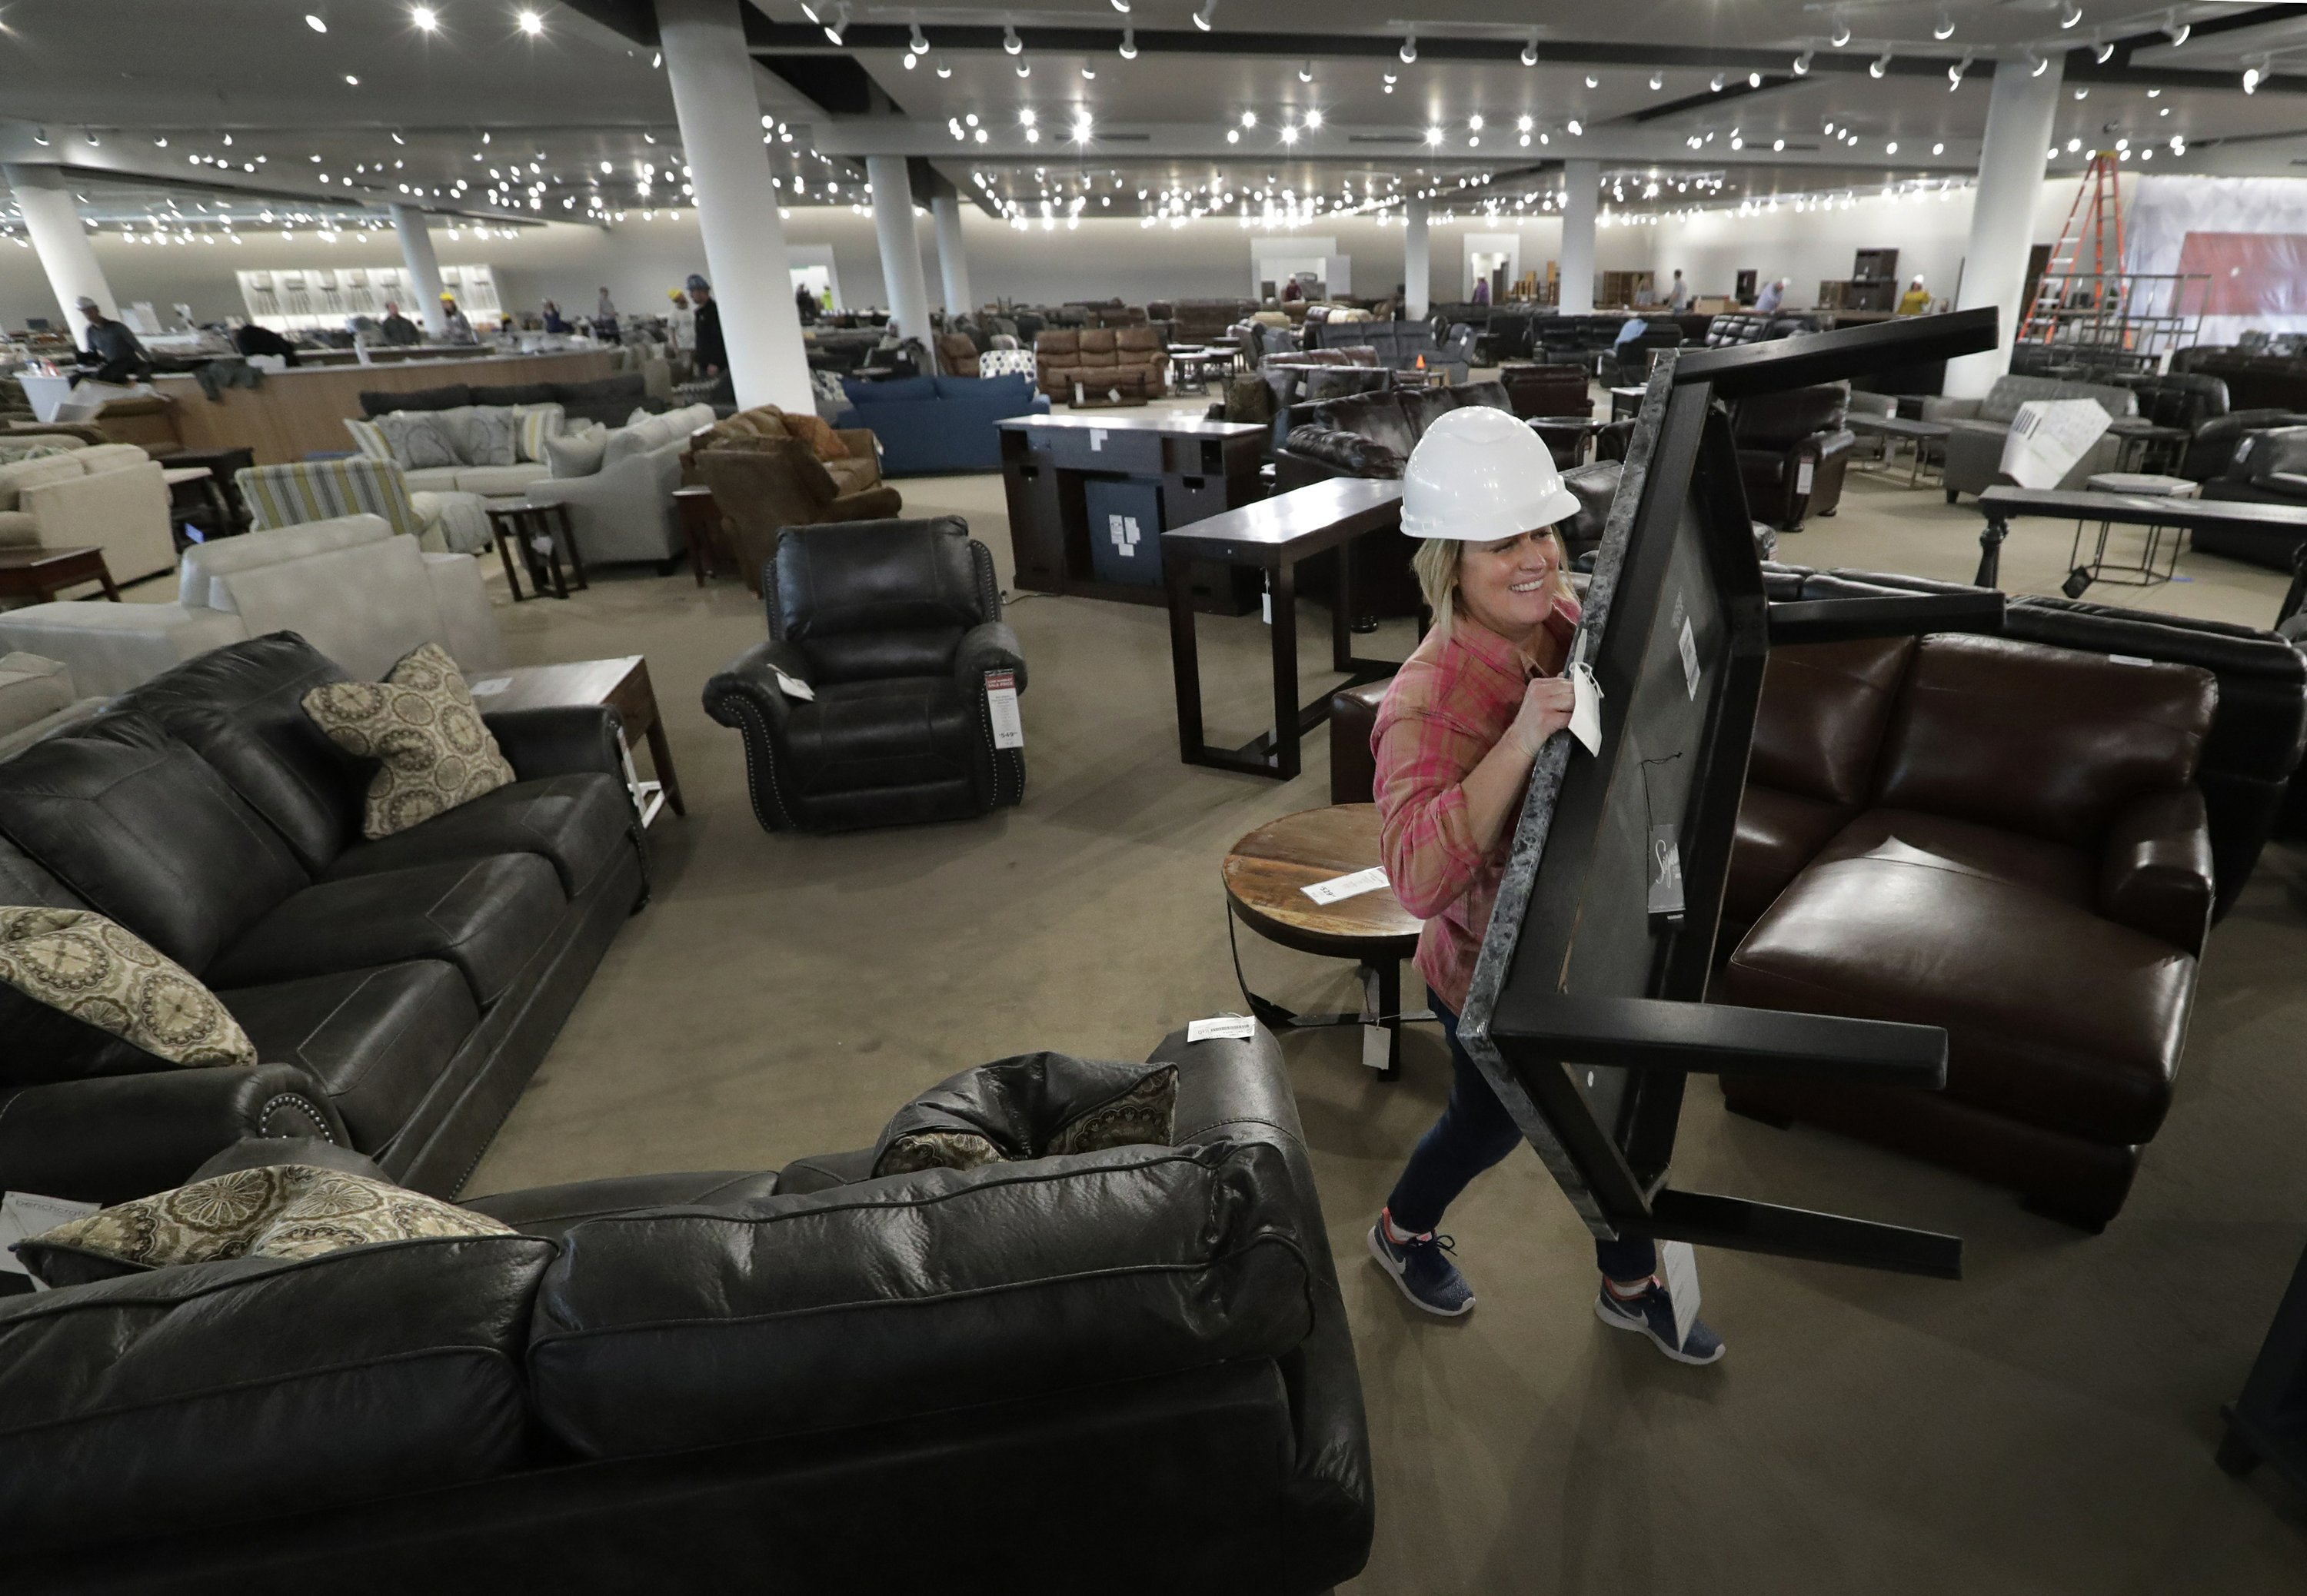 wisconsin furniture store opens new location in grand chute. Black Bedroom Furniture Sets. Home Design Ideas